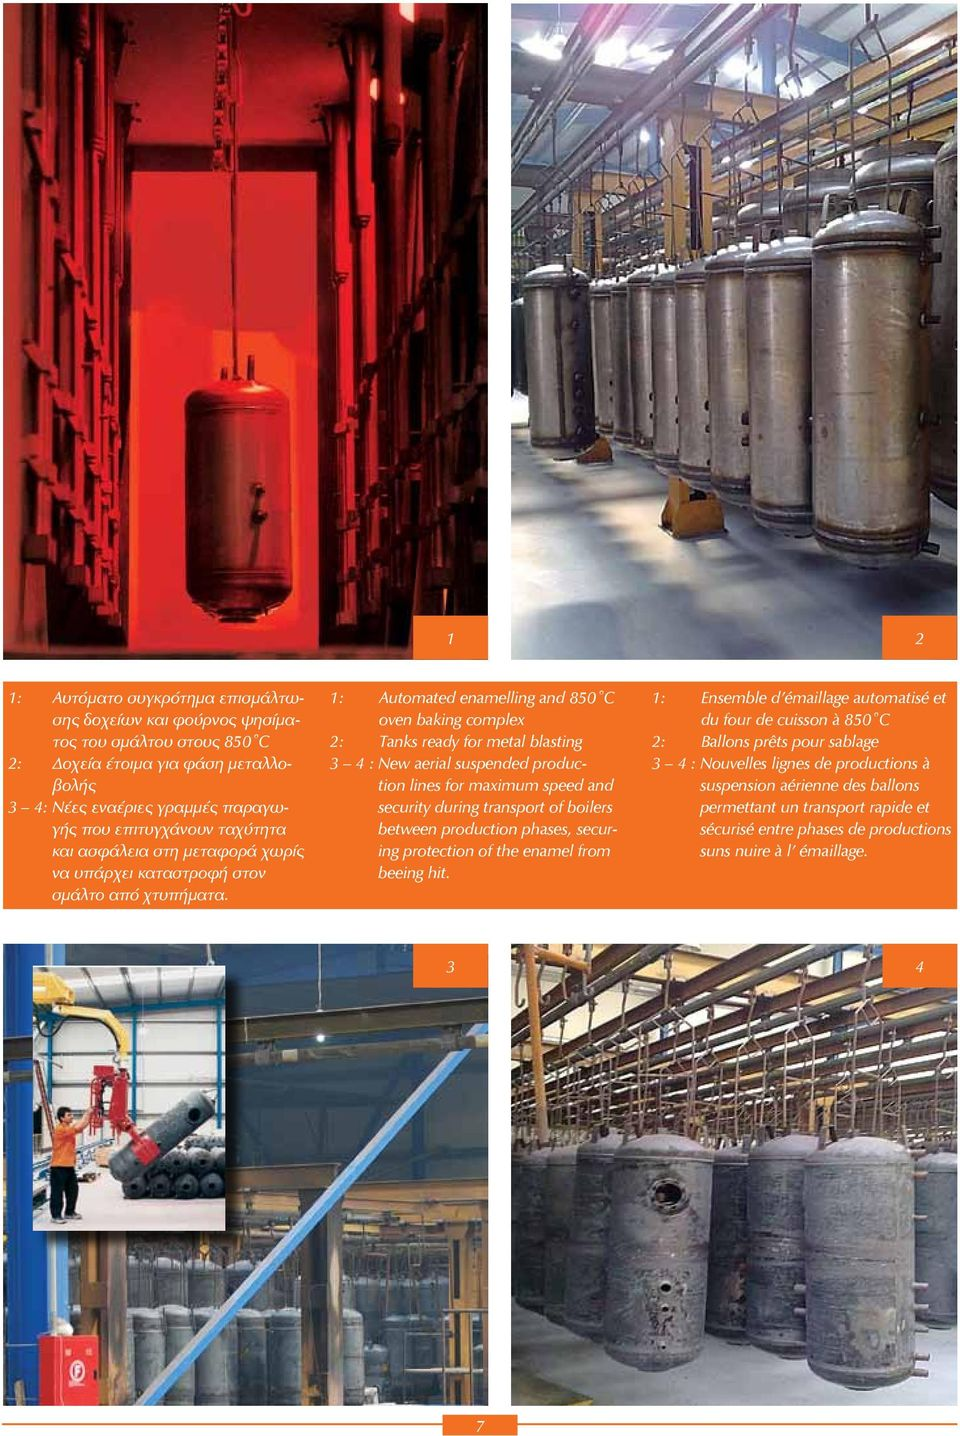 1: Automated enamelling and 850 C oven baking complex 2: Tanks ready for metal blasting 3 4 : New aerial suspended production lines for maximum speed and security during transport of boilers between